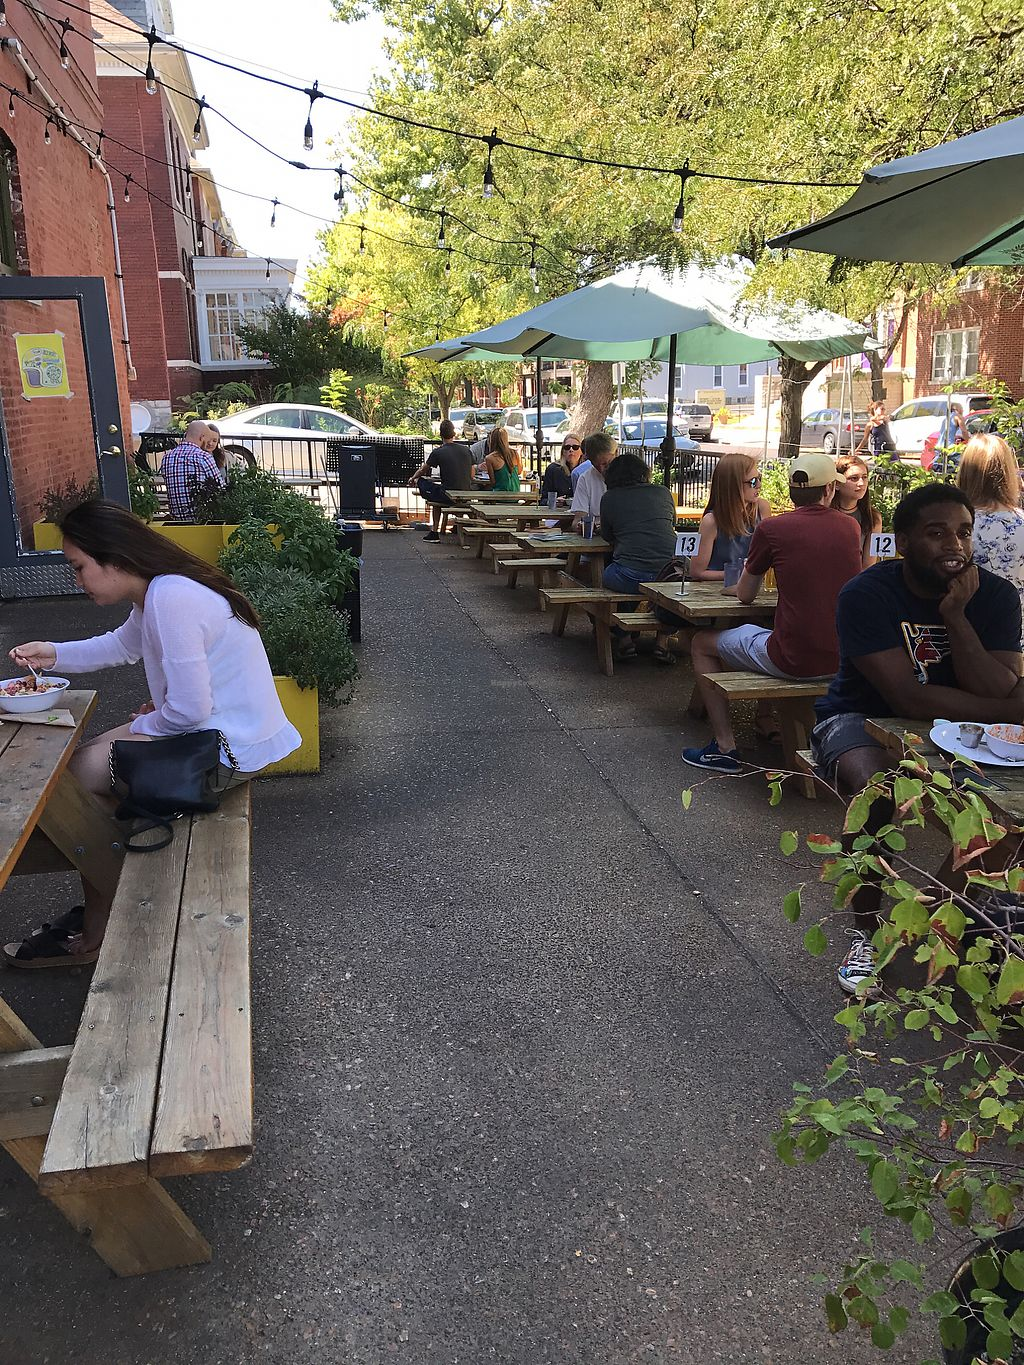 """Photo of Lulu's Local Eatery  by <a href=""""/members/profile/Wolf-LoverMarie"""">Wolf-LoverMarie</a> <br/>Suiting outside was enjoyable  <br/> September 2, 2017  - <a href='/contact/abuse/image/40268/300233'>Report</a>"""